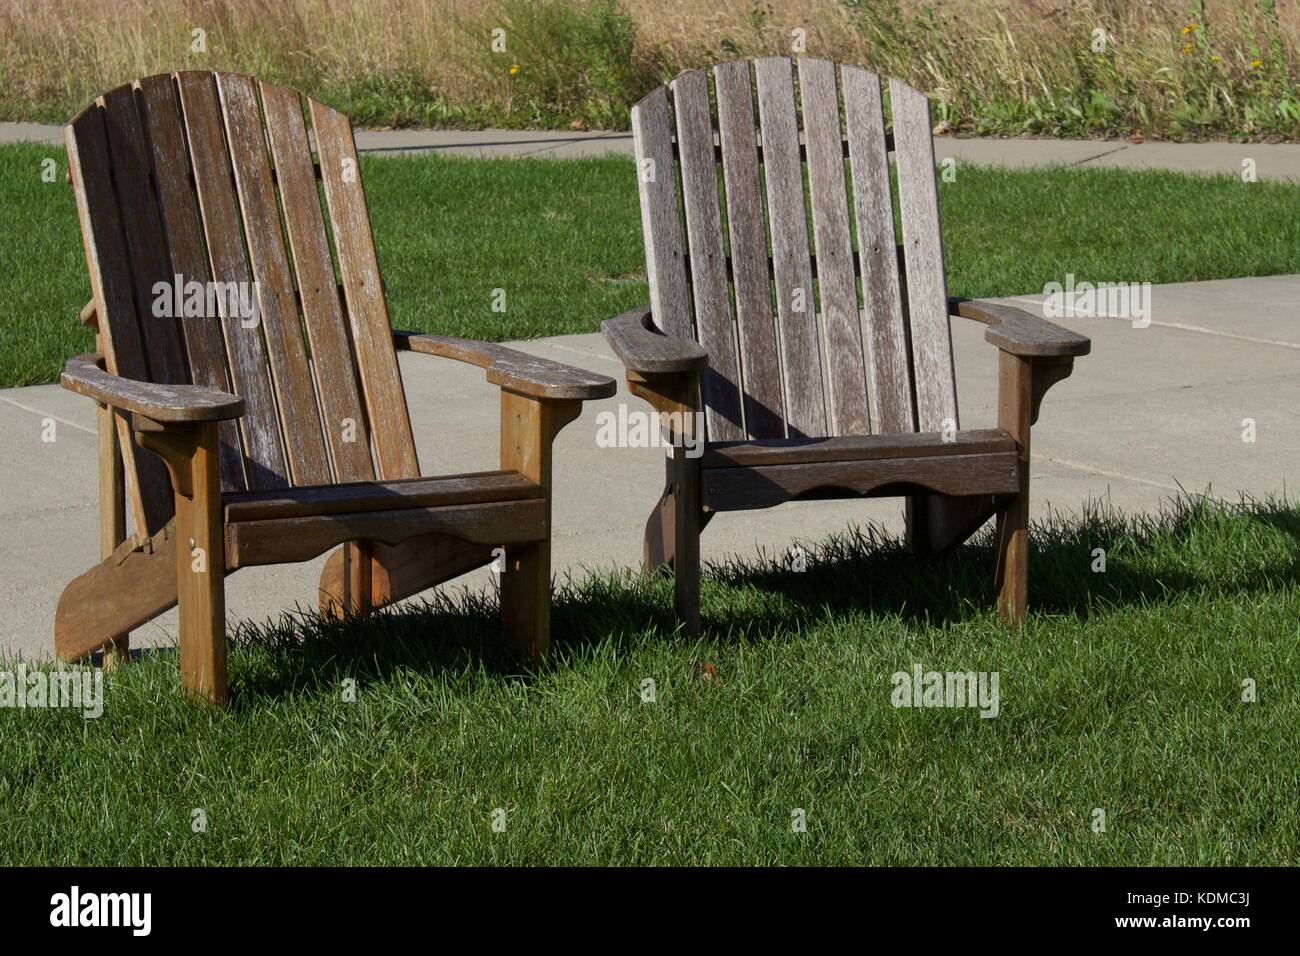 new river adirondack chairs red metal target lawn chair lounge empty stock photos and